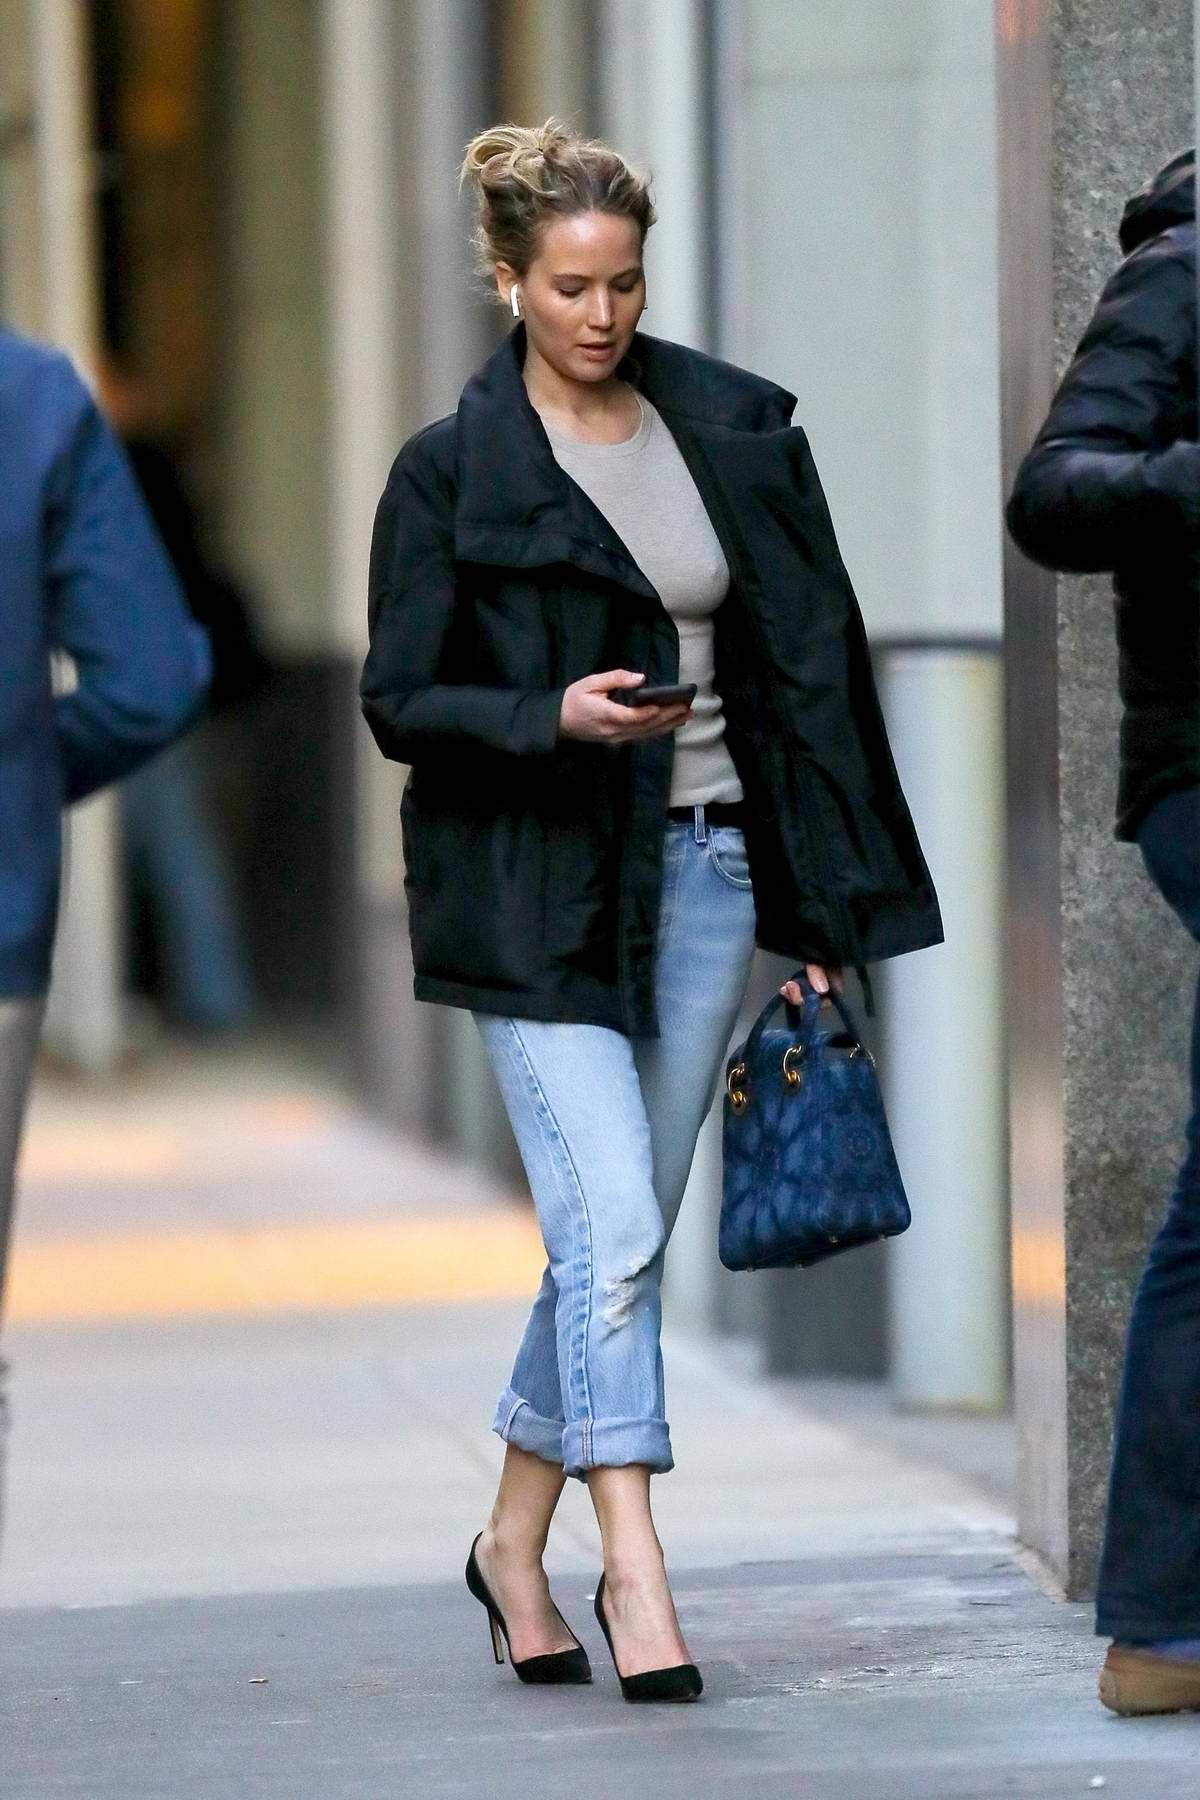 Jennifer Lawrence opts for a smart casual look while out in New York City